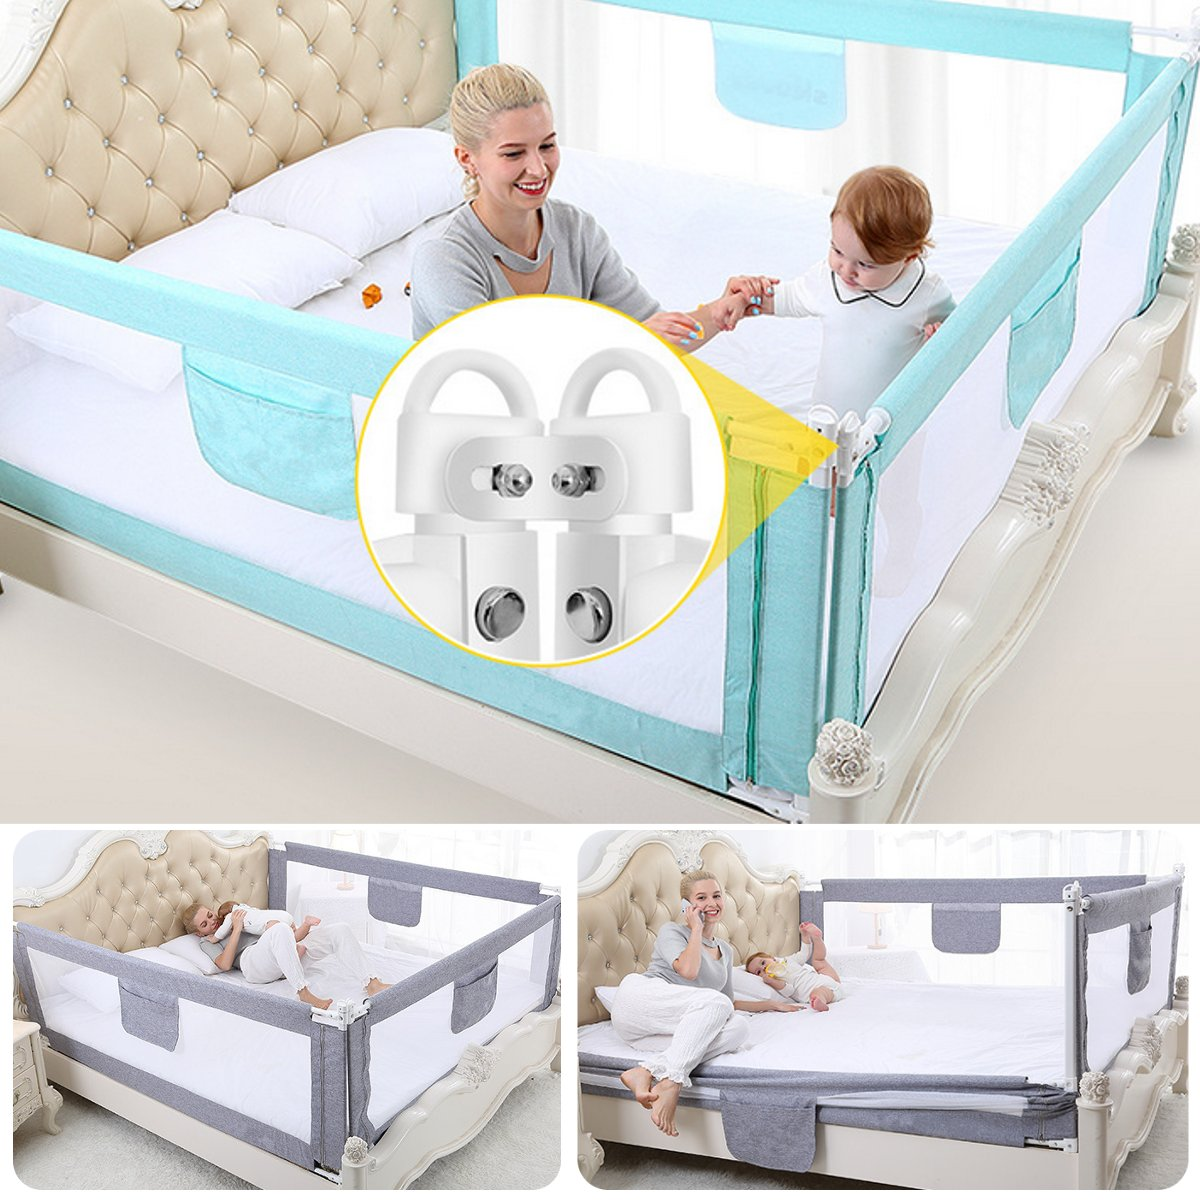 2M Baby Bed Fence for Child Safety used as Baby Gate from Falling Accidentally while Sleeping or Playing 5